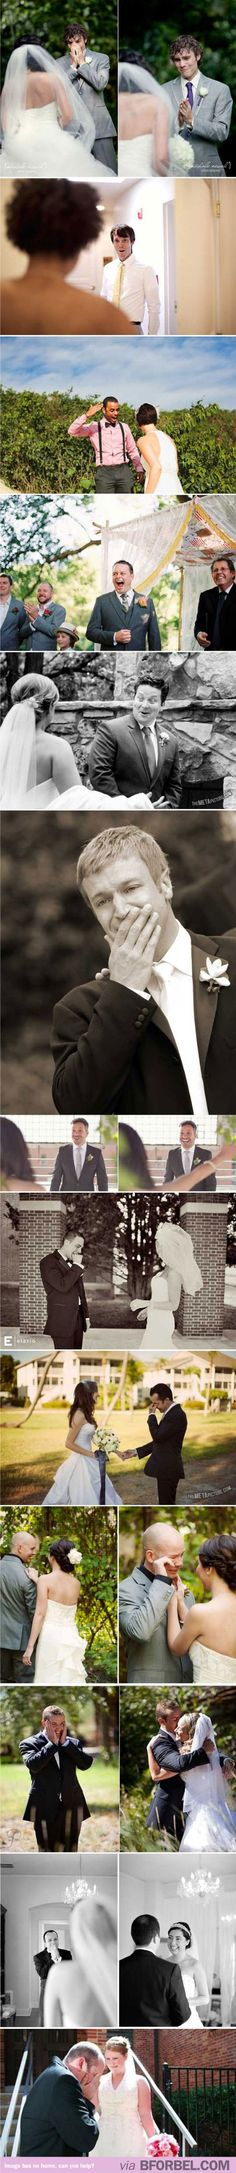 Grooms seeing their Brides first time - every girl deserves the best one of these!